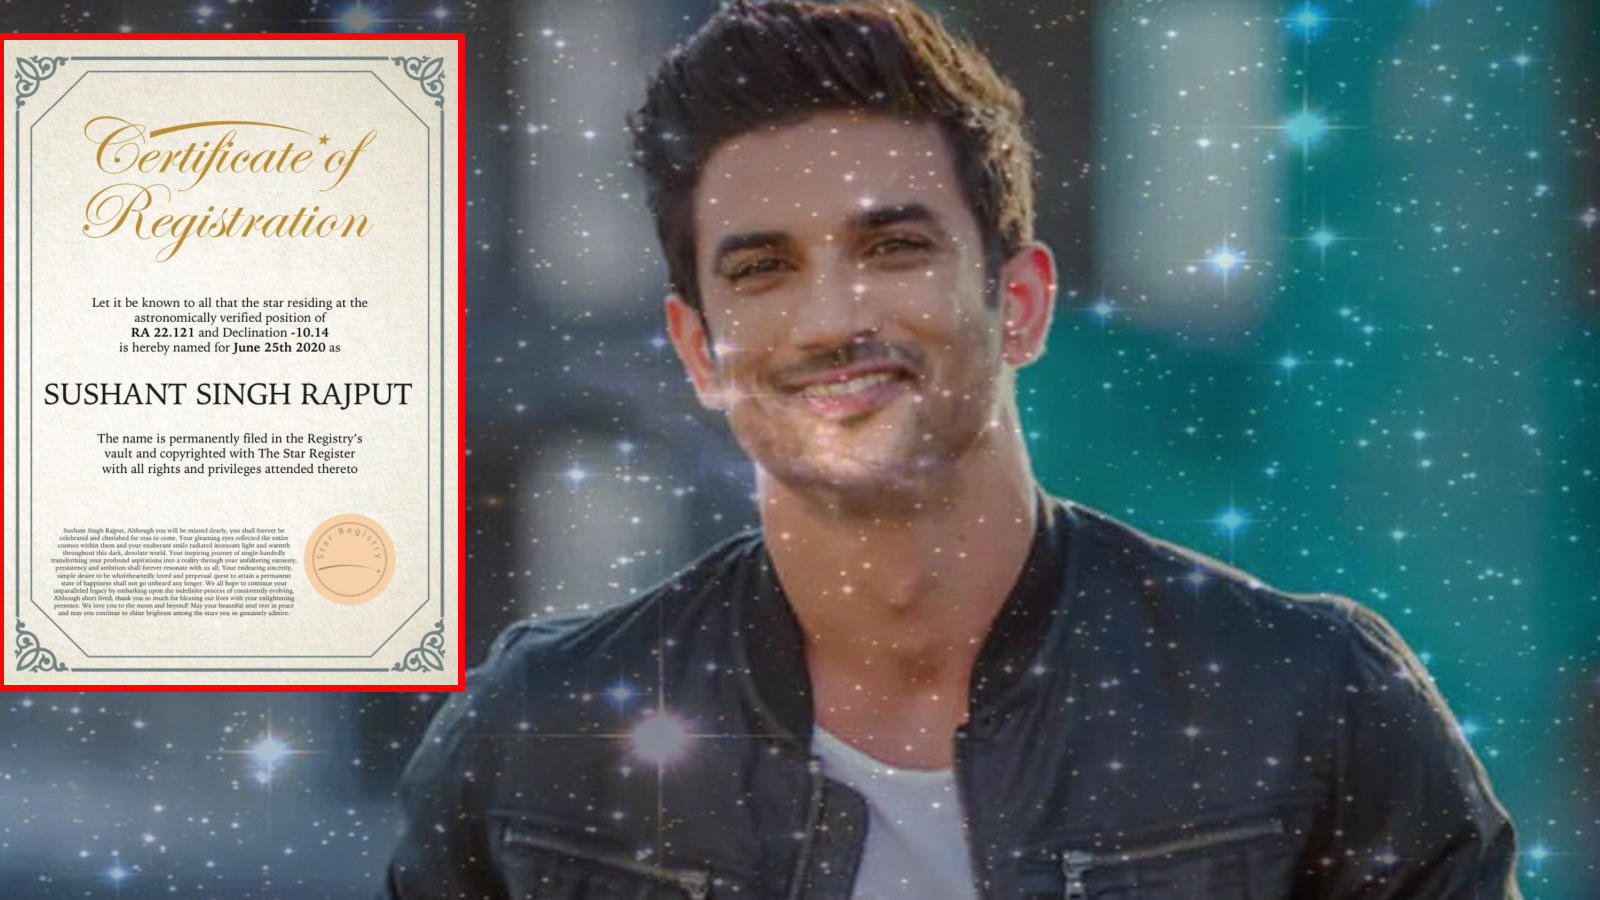 fan-names-a-star-after-late-sushant-singh-rajput-writes-may-you-continue-to-shine-brightest